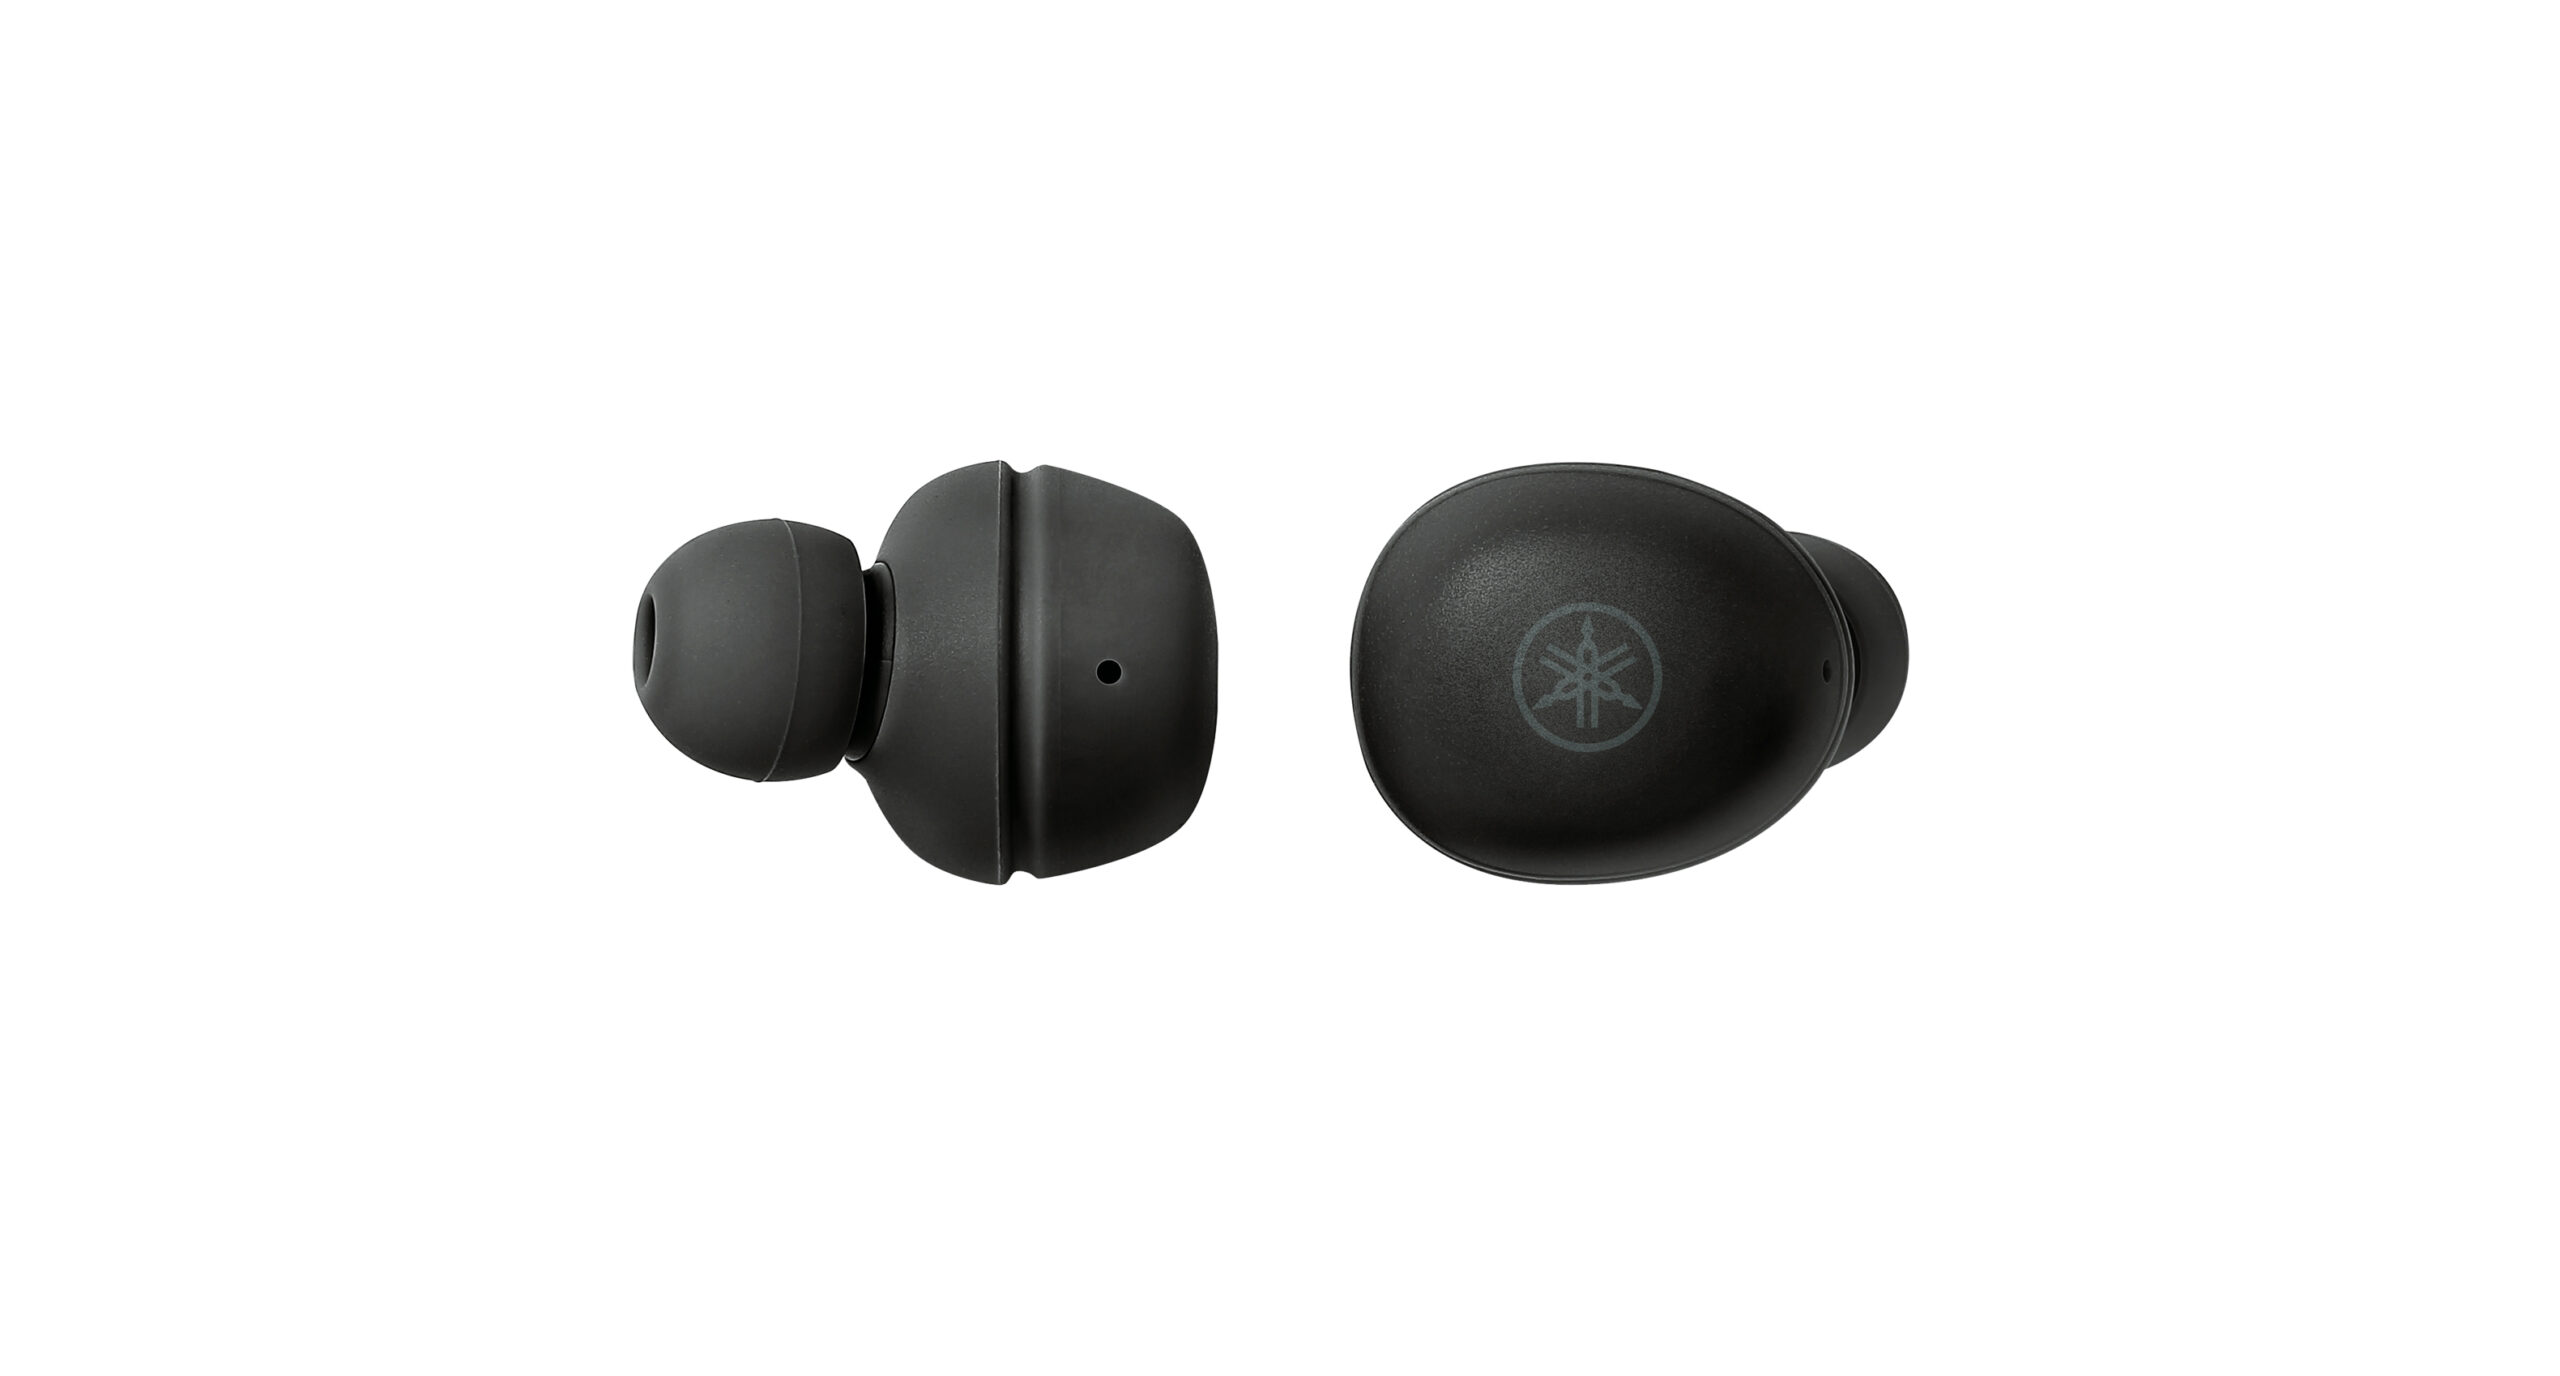 Yamaha true wireless earbuds